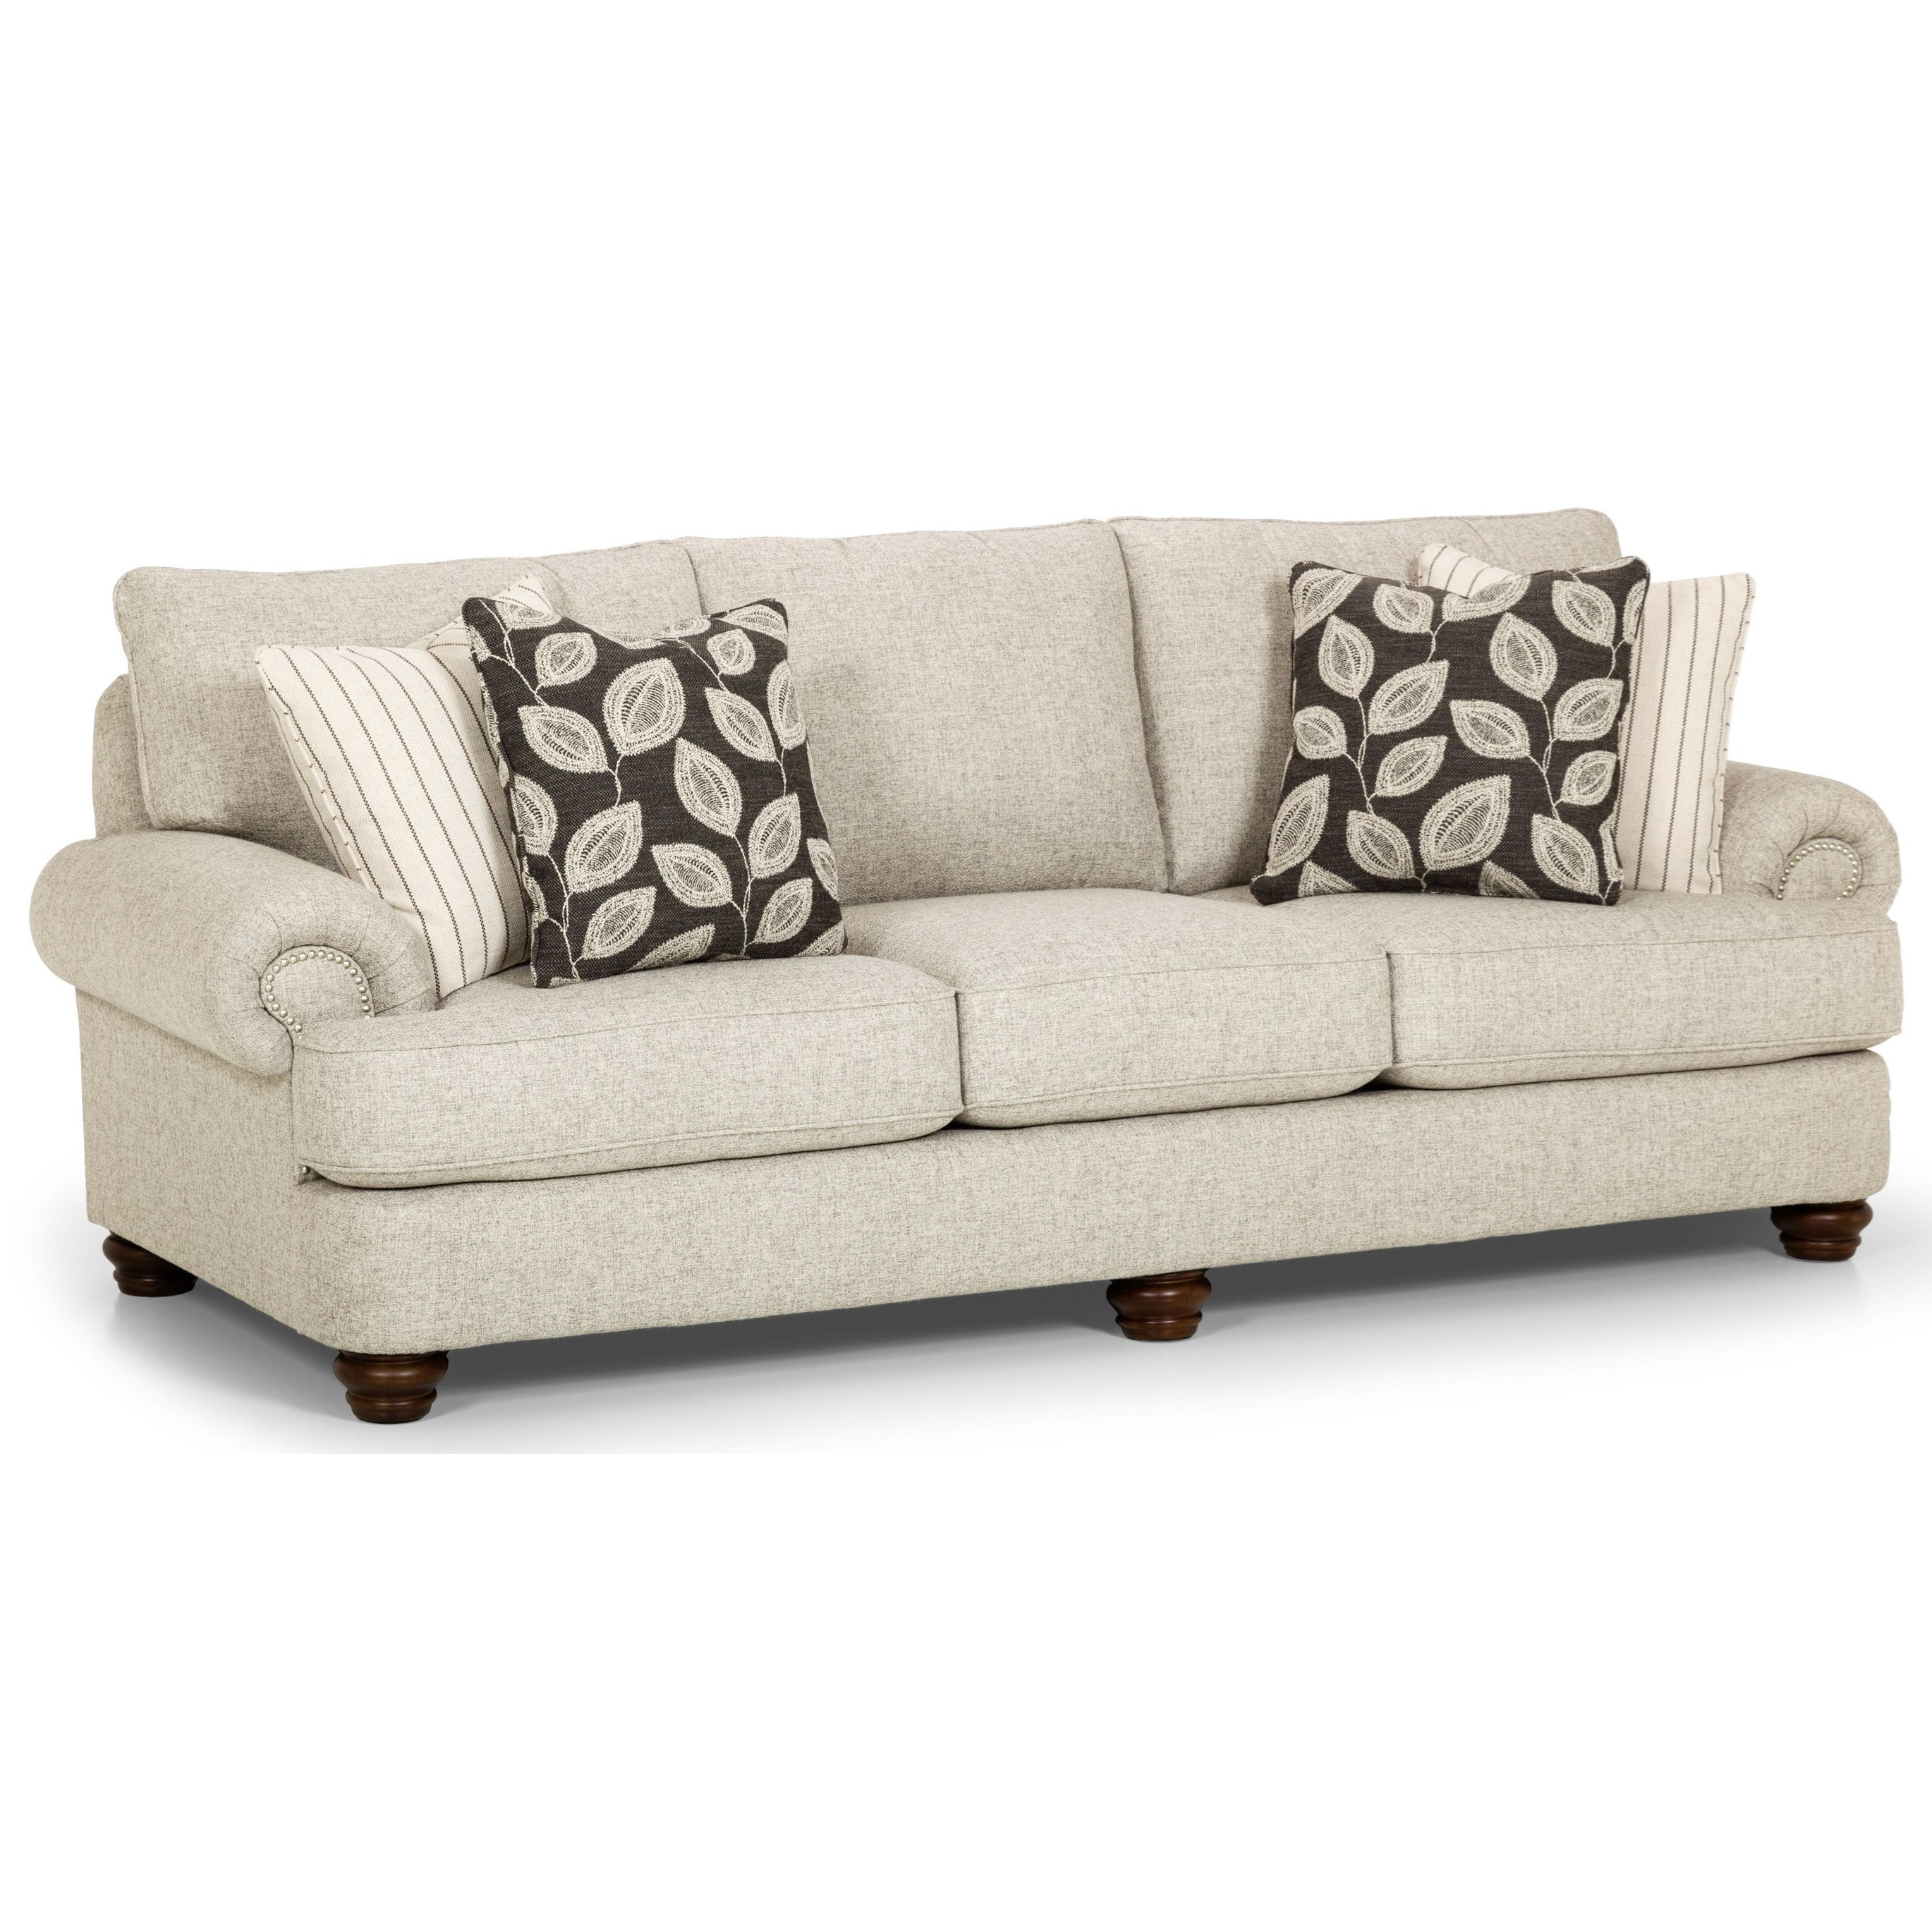 567 Sofa by Stanton at Wilson's Furniture